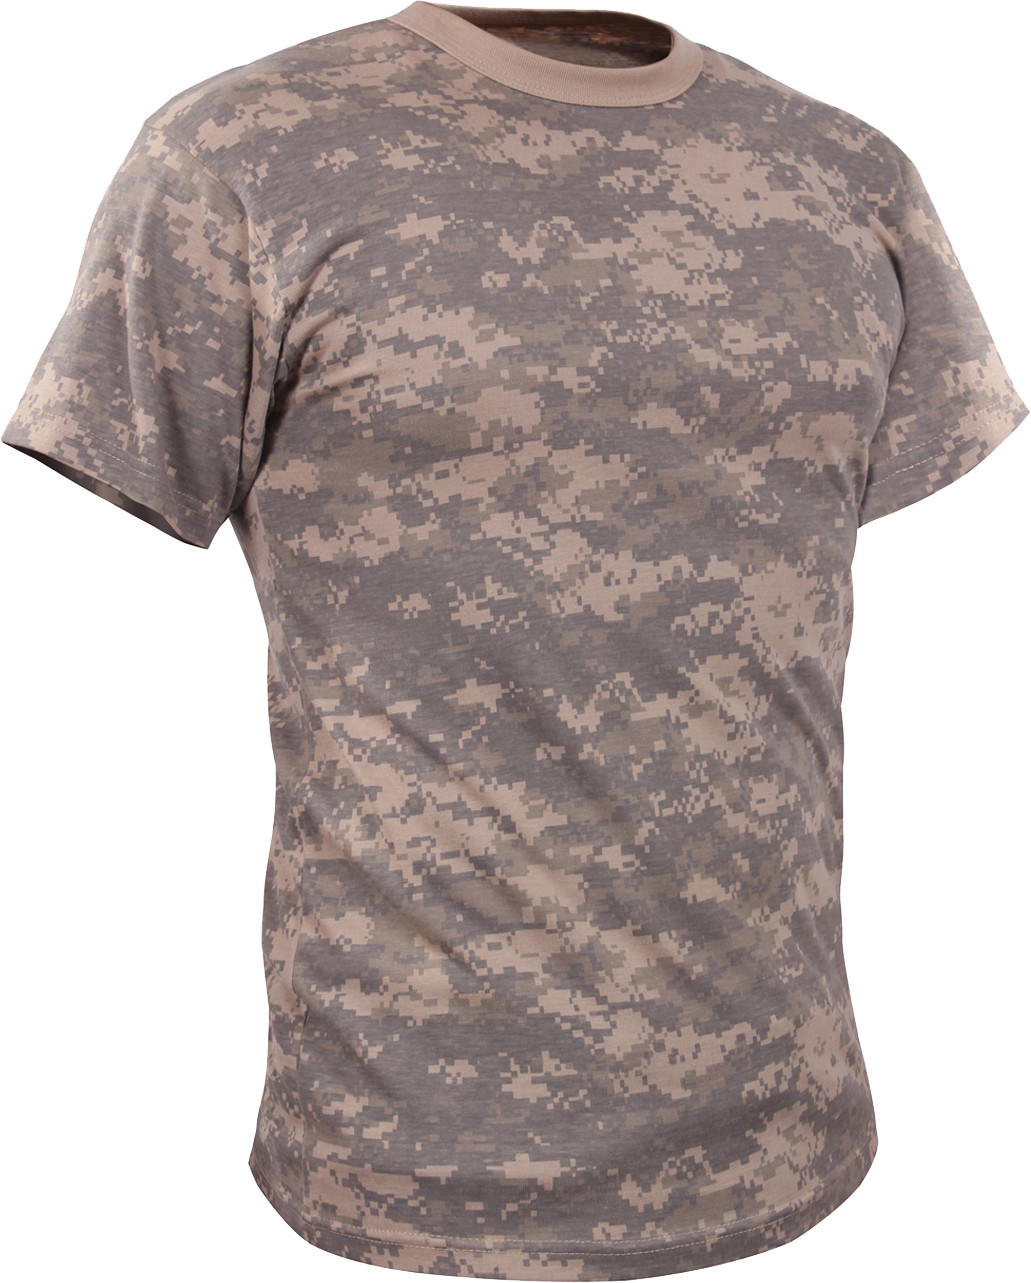 More Views. ACU Digital Camouflage Vintage Kids Military Tactical T-Shirt 54ca5228d98